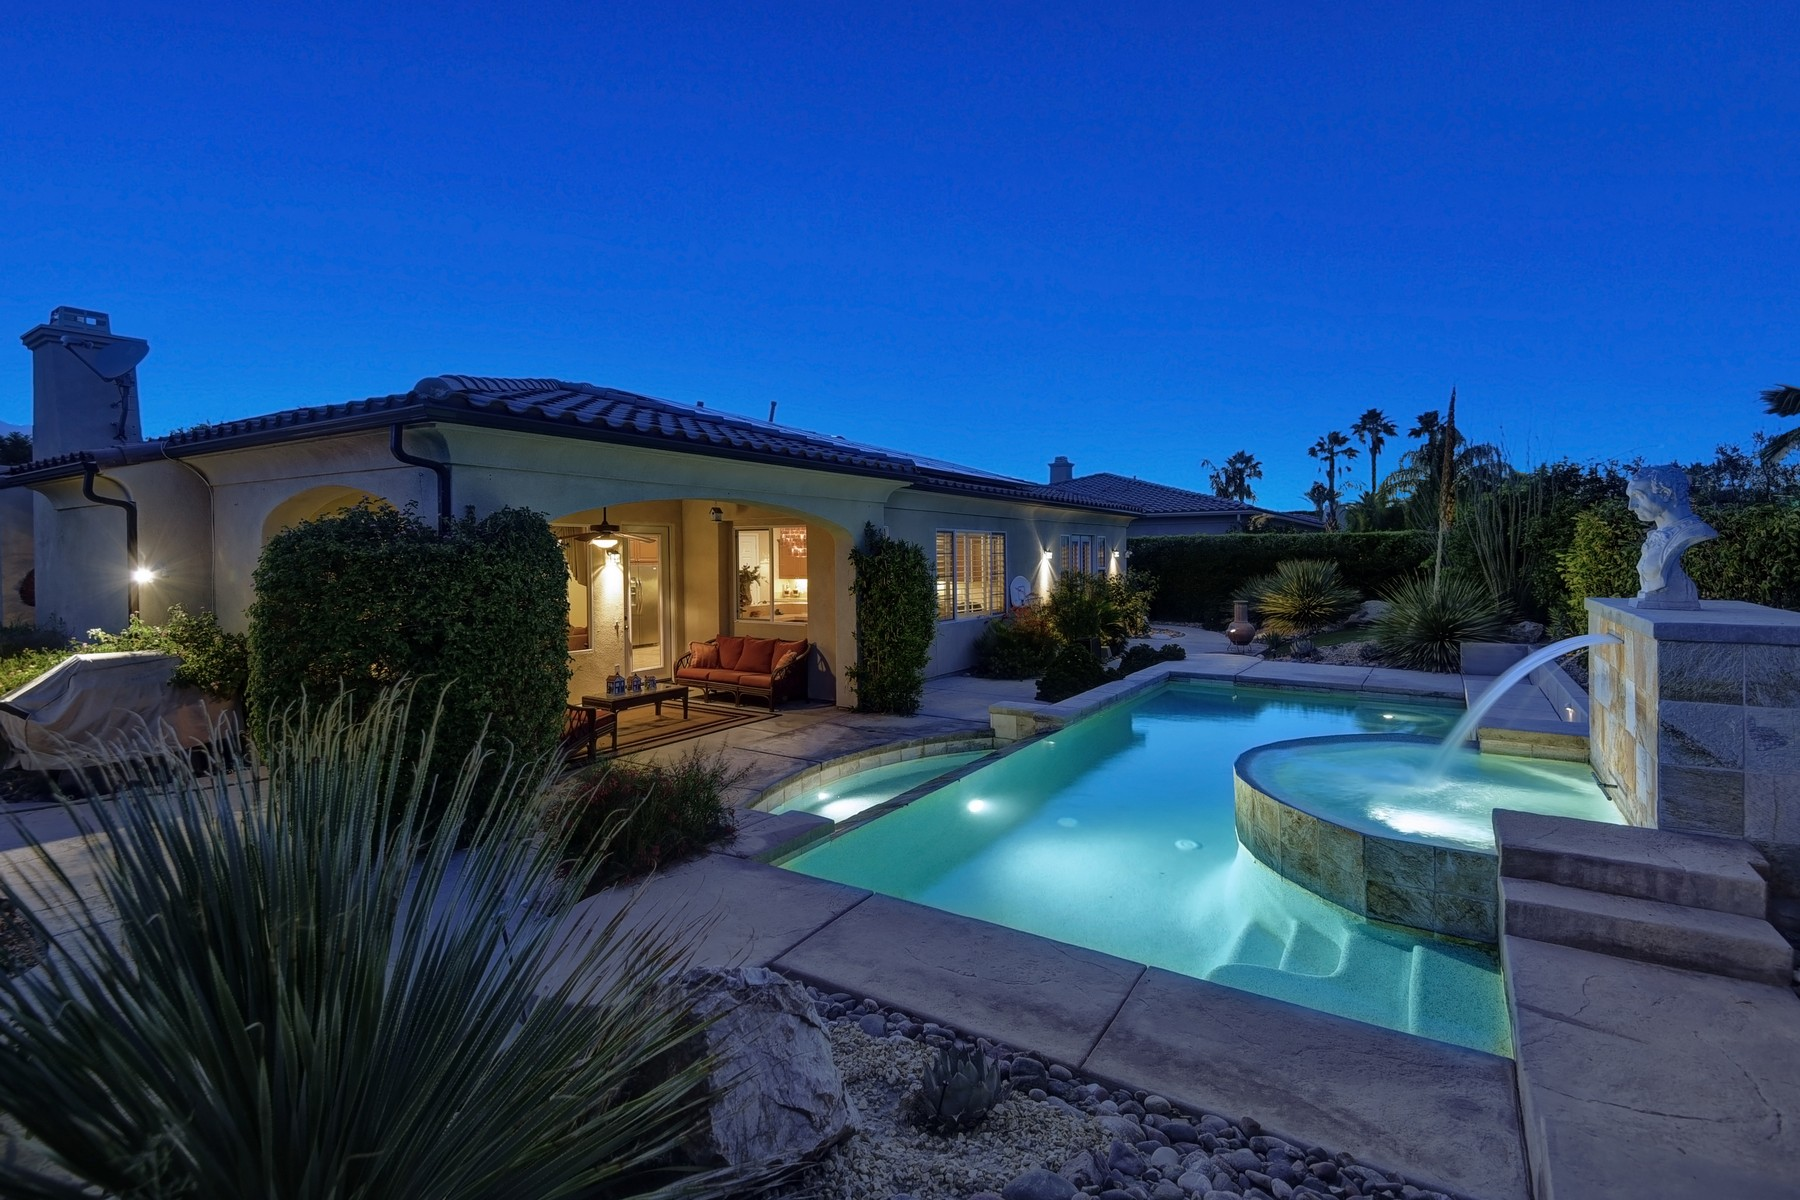 Single Family Home for Sale at 69777 Camino Pacifico Rancho Mirage, California, 92270 United States